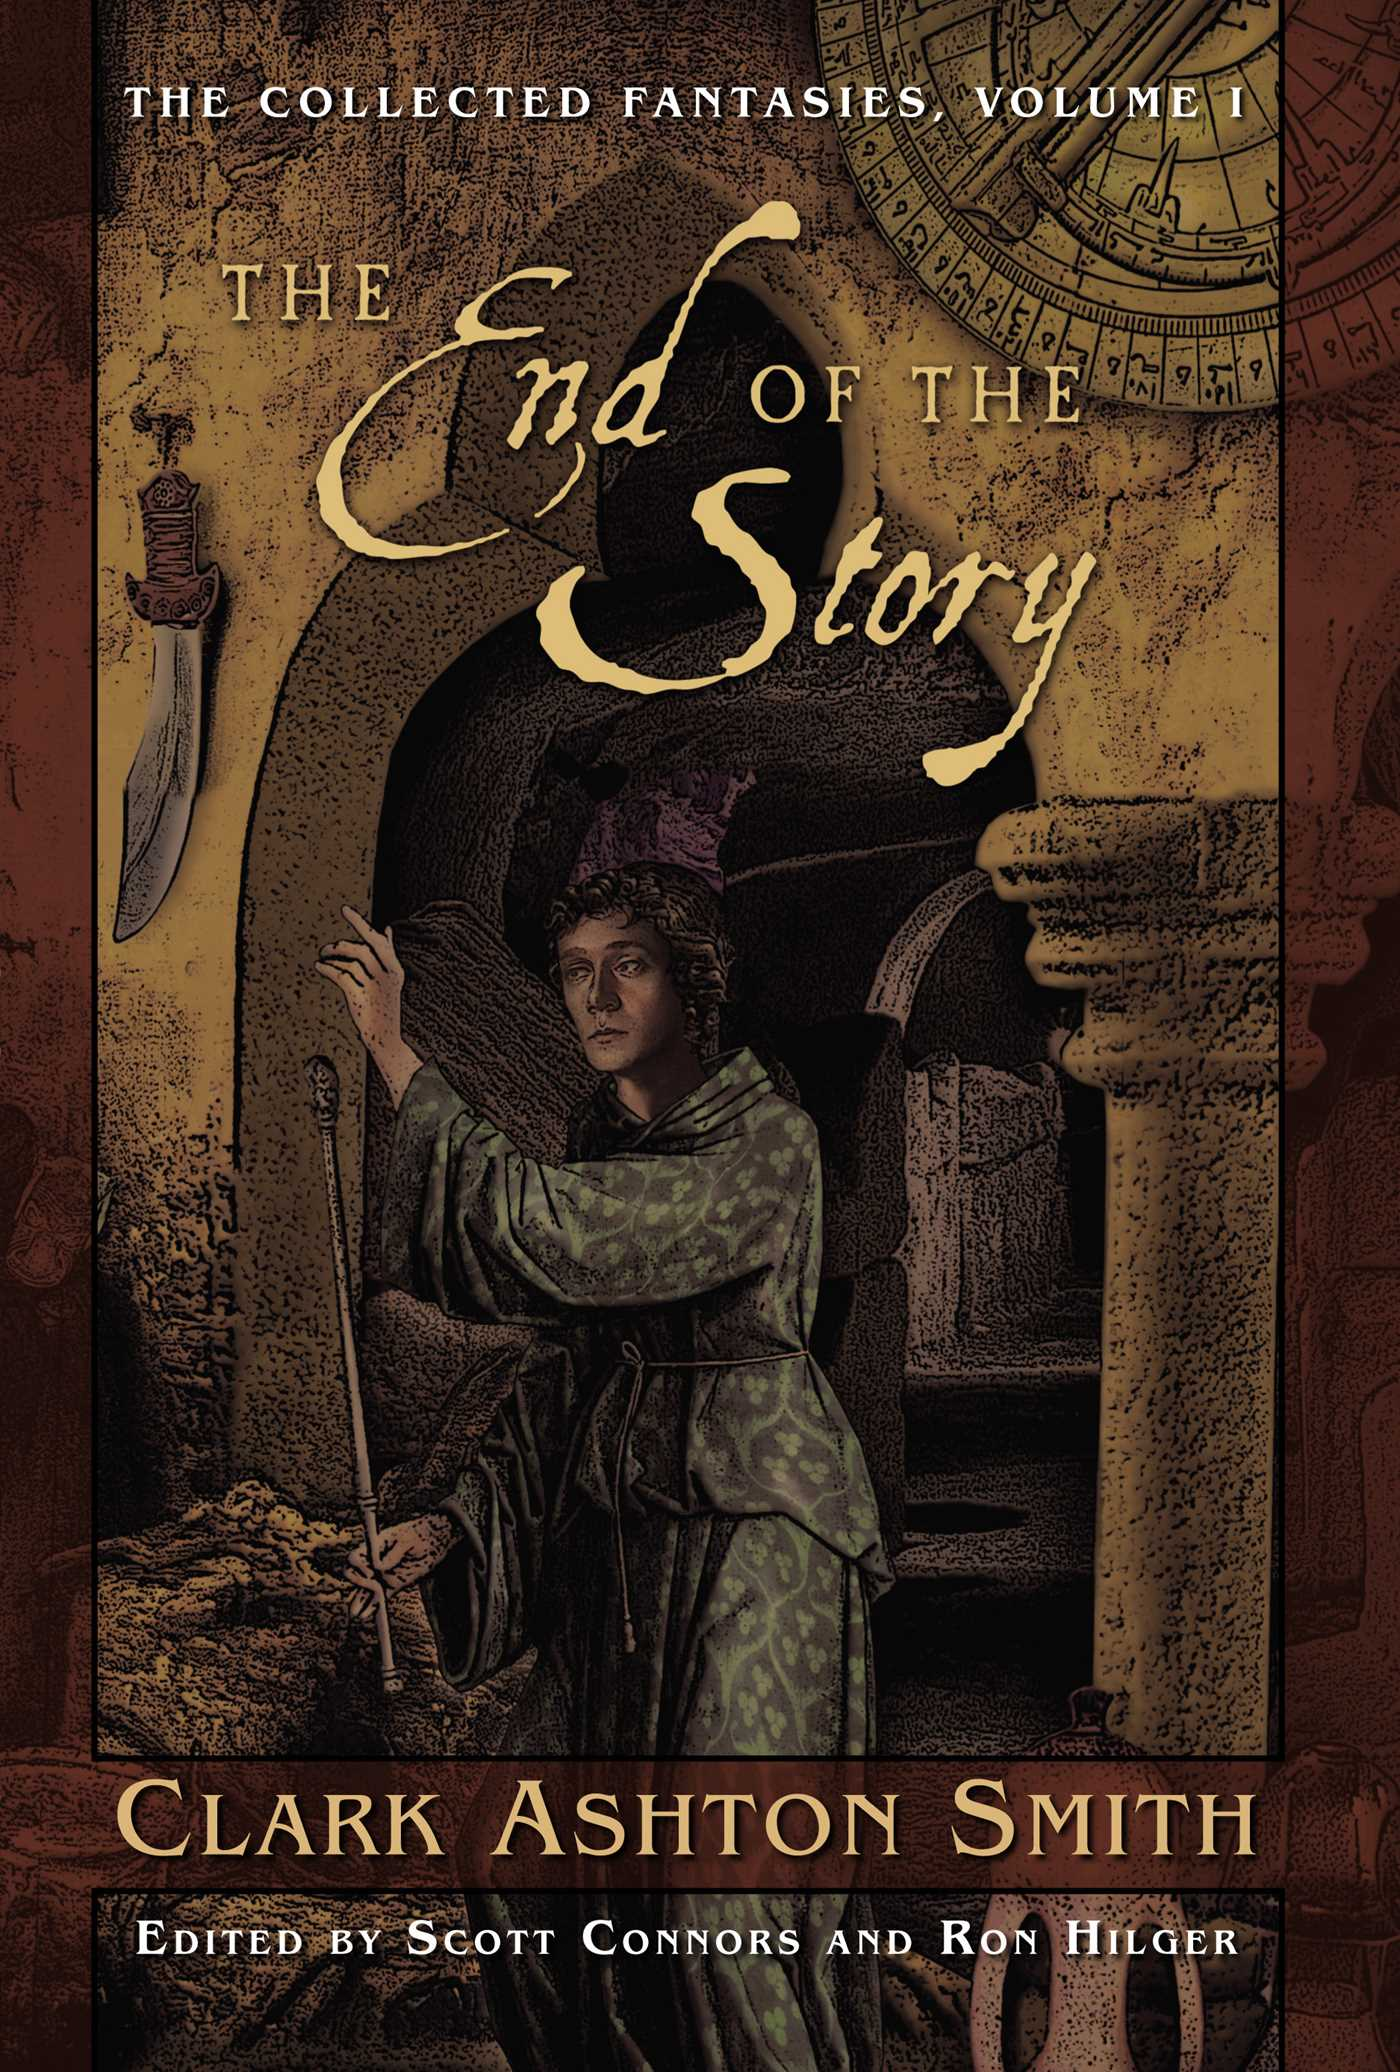 Collected Fantasies of Clark Ashton Smith Volume 1: The End Of The Story